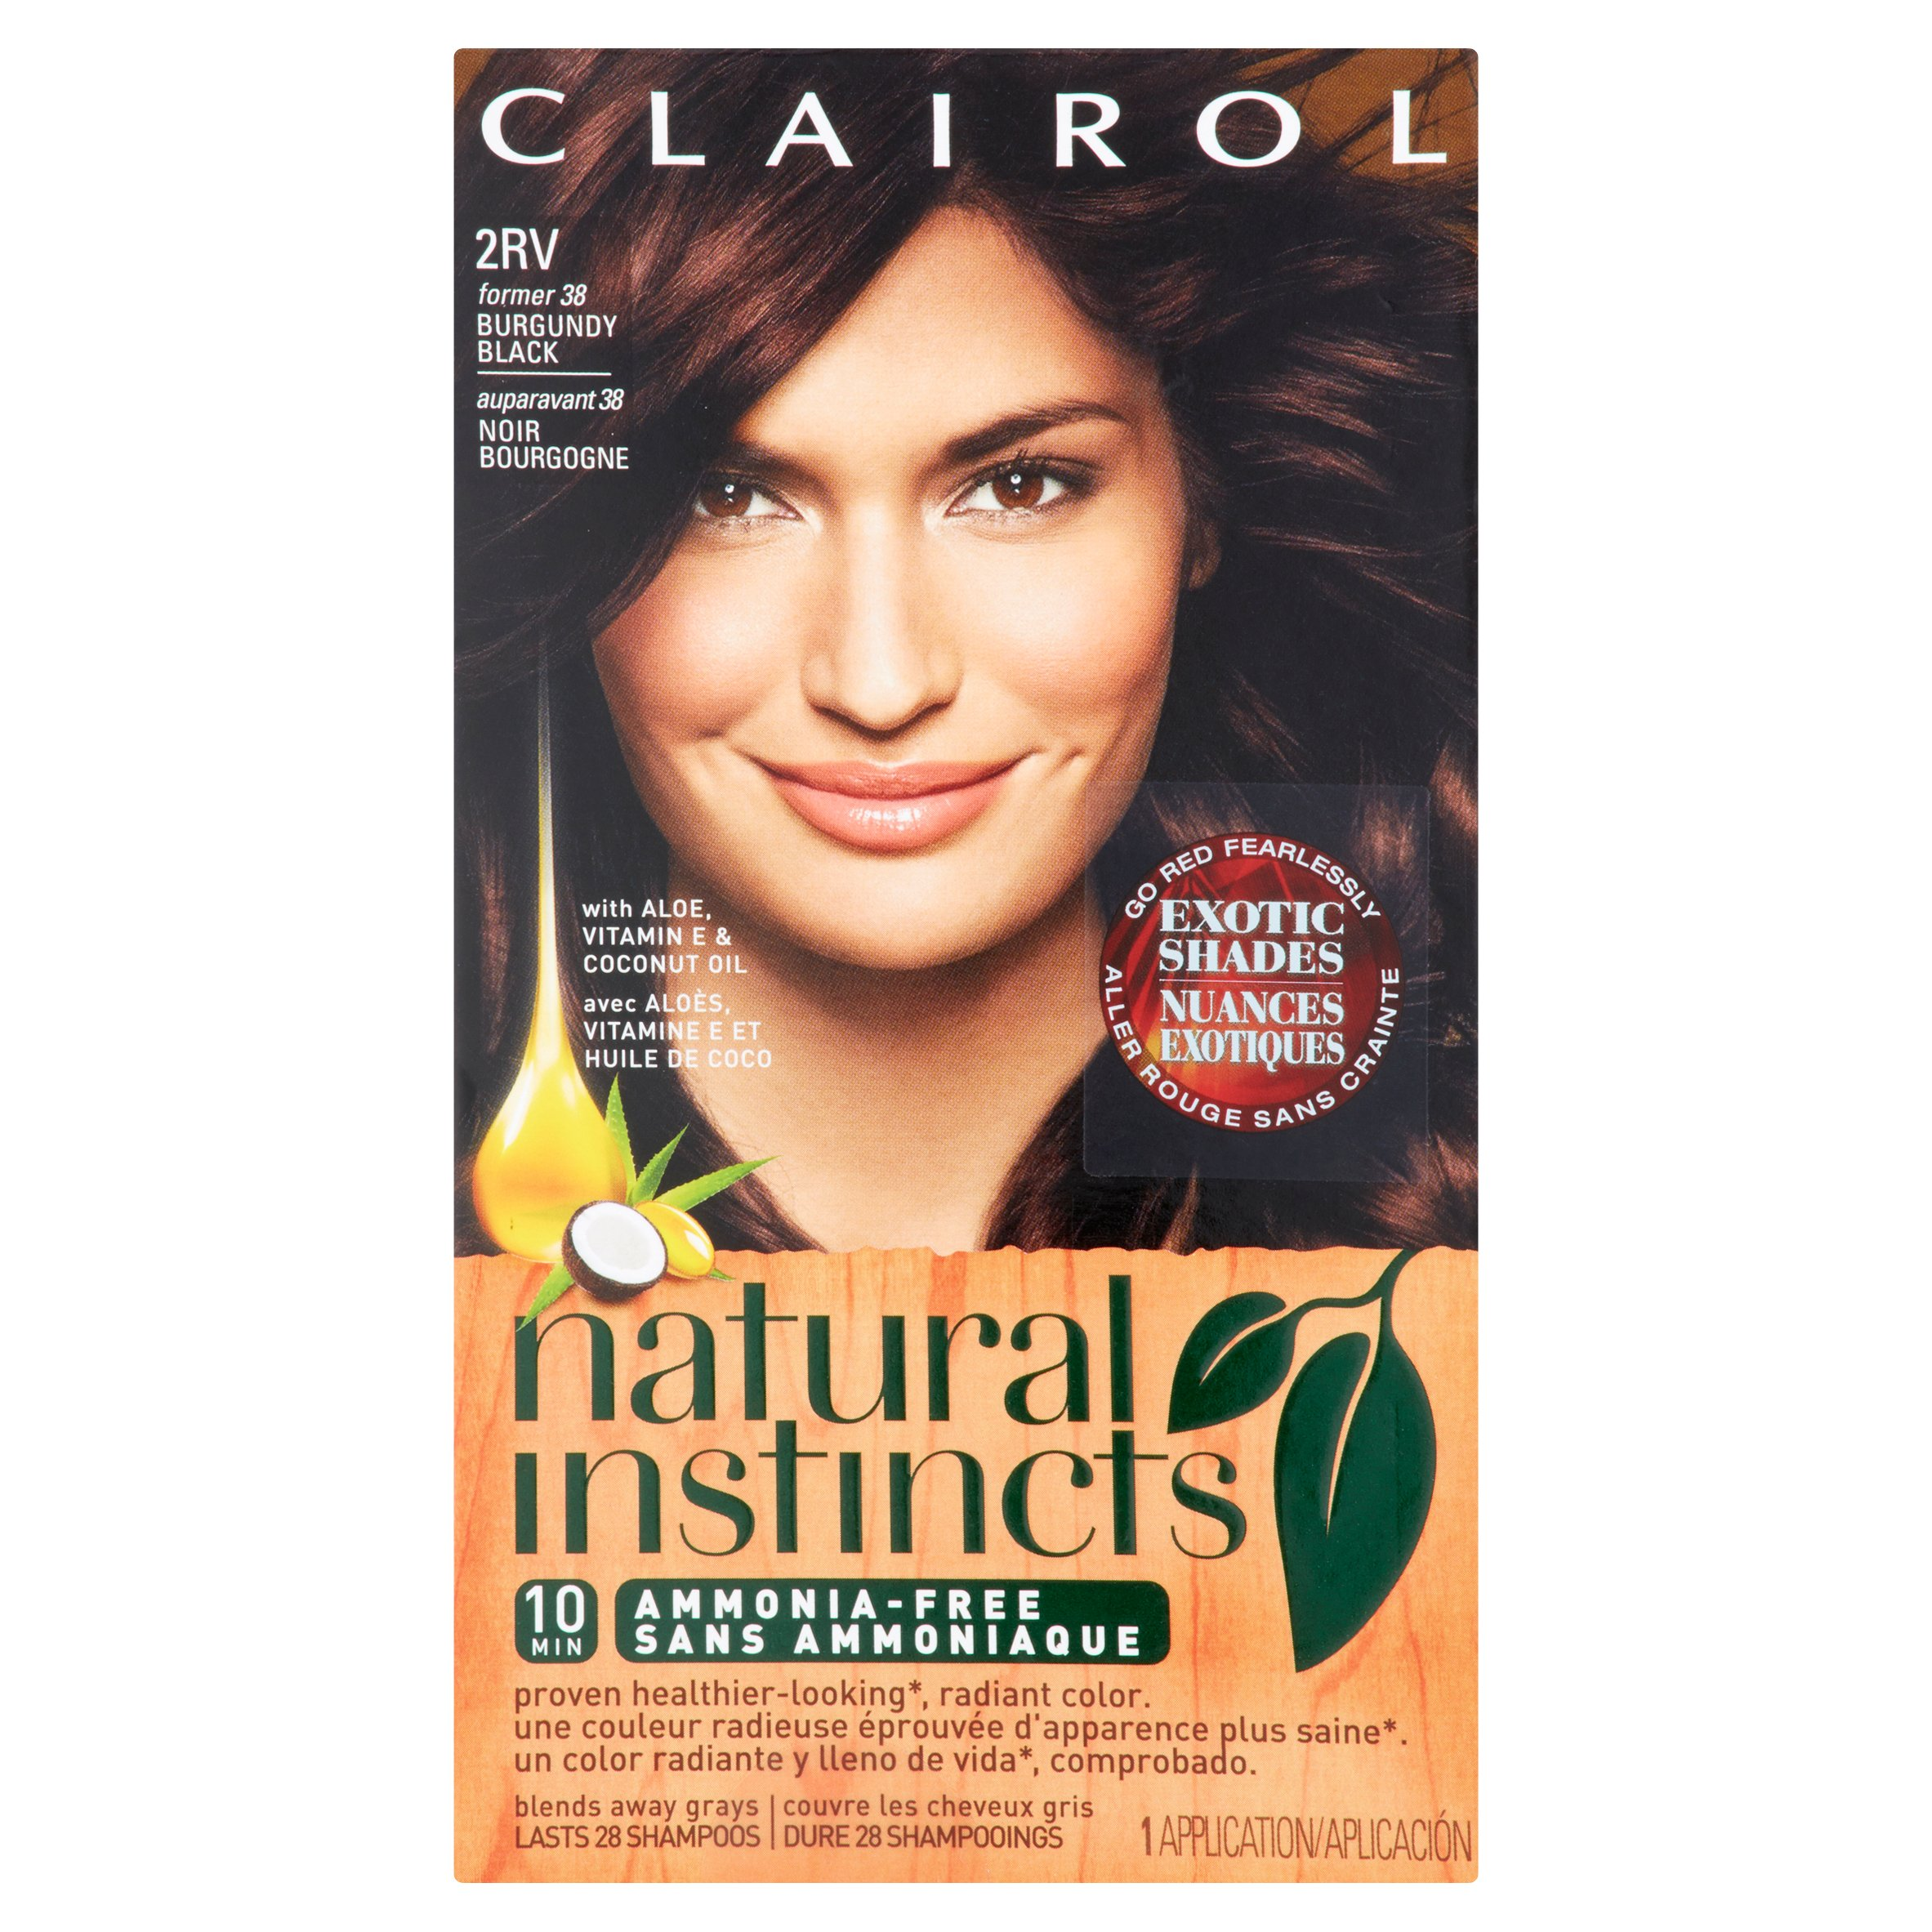 clairol natural instincts hair